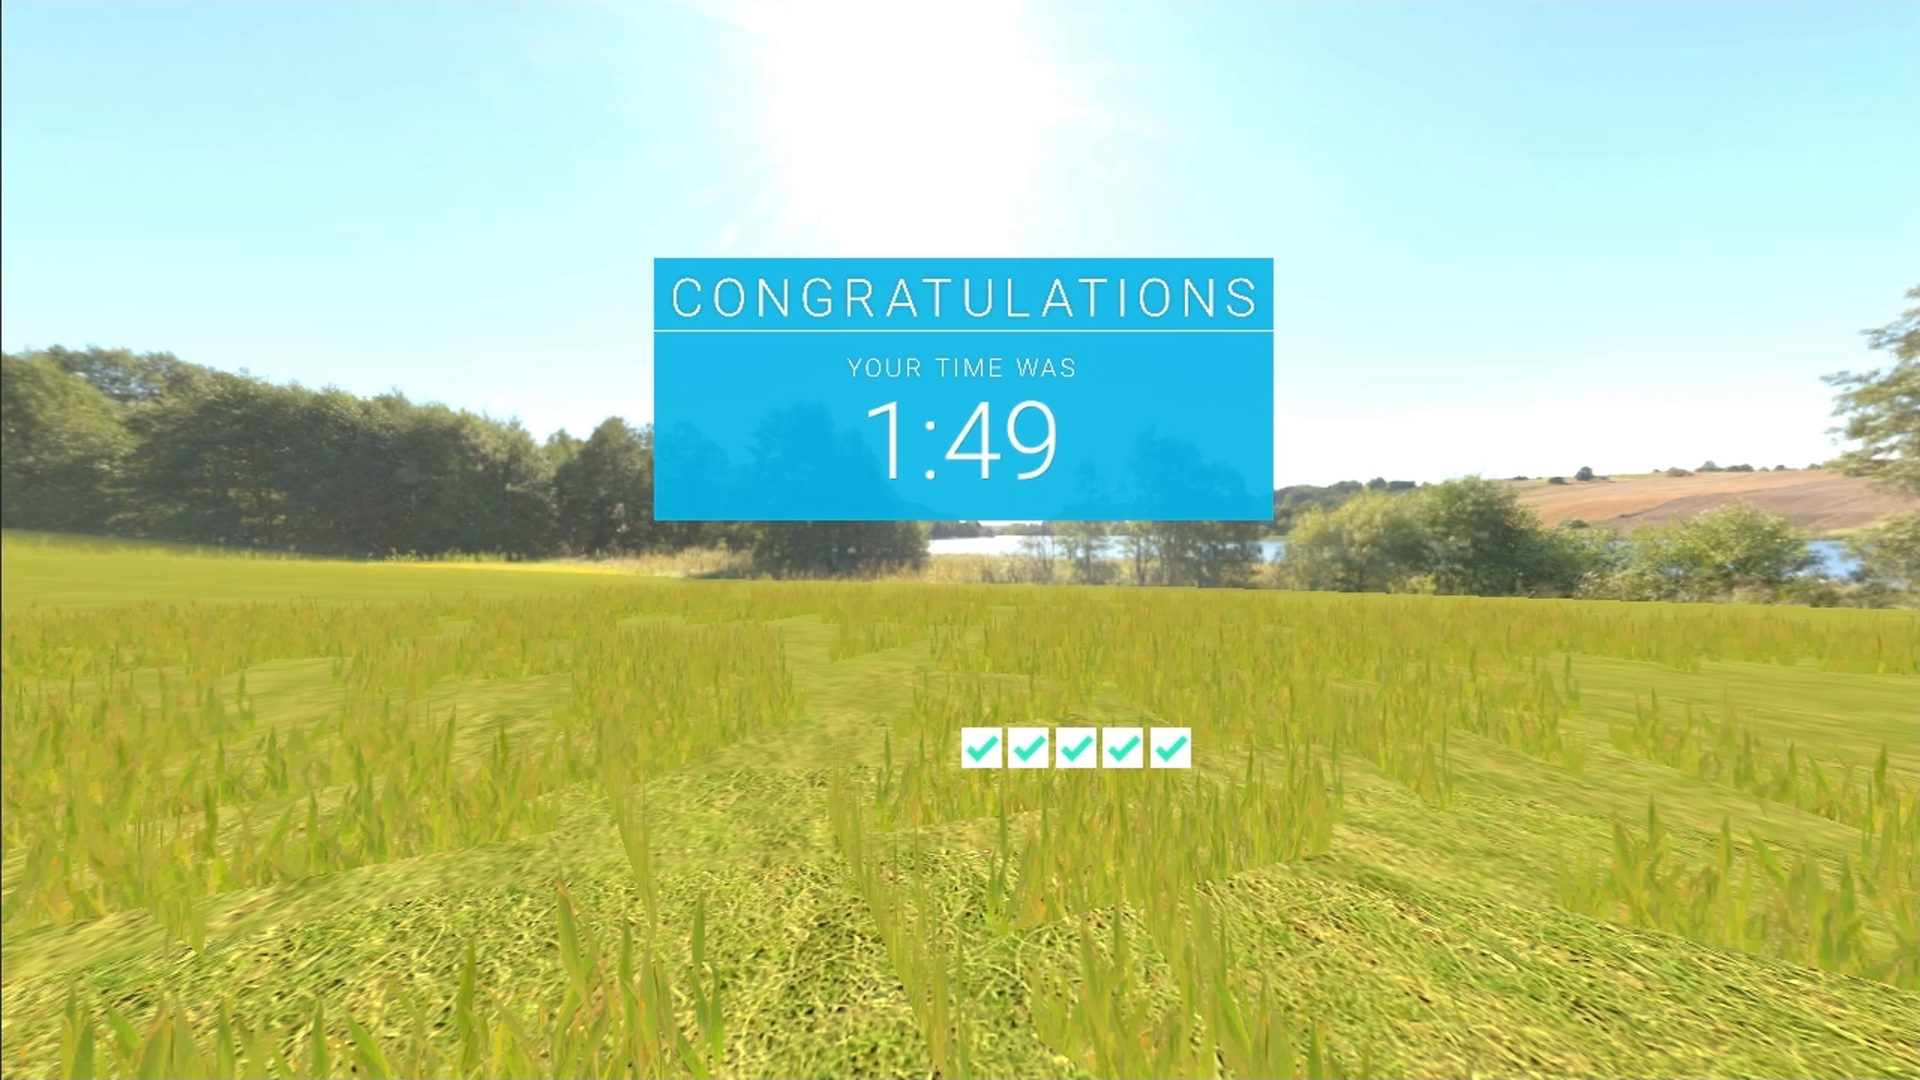 vr_learning_02, landscape with graphic overlay showing time scored and 5 ticked boxes